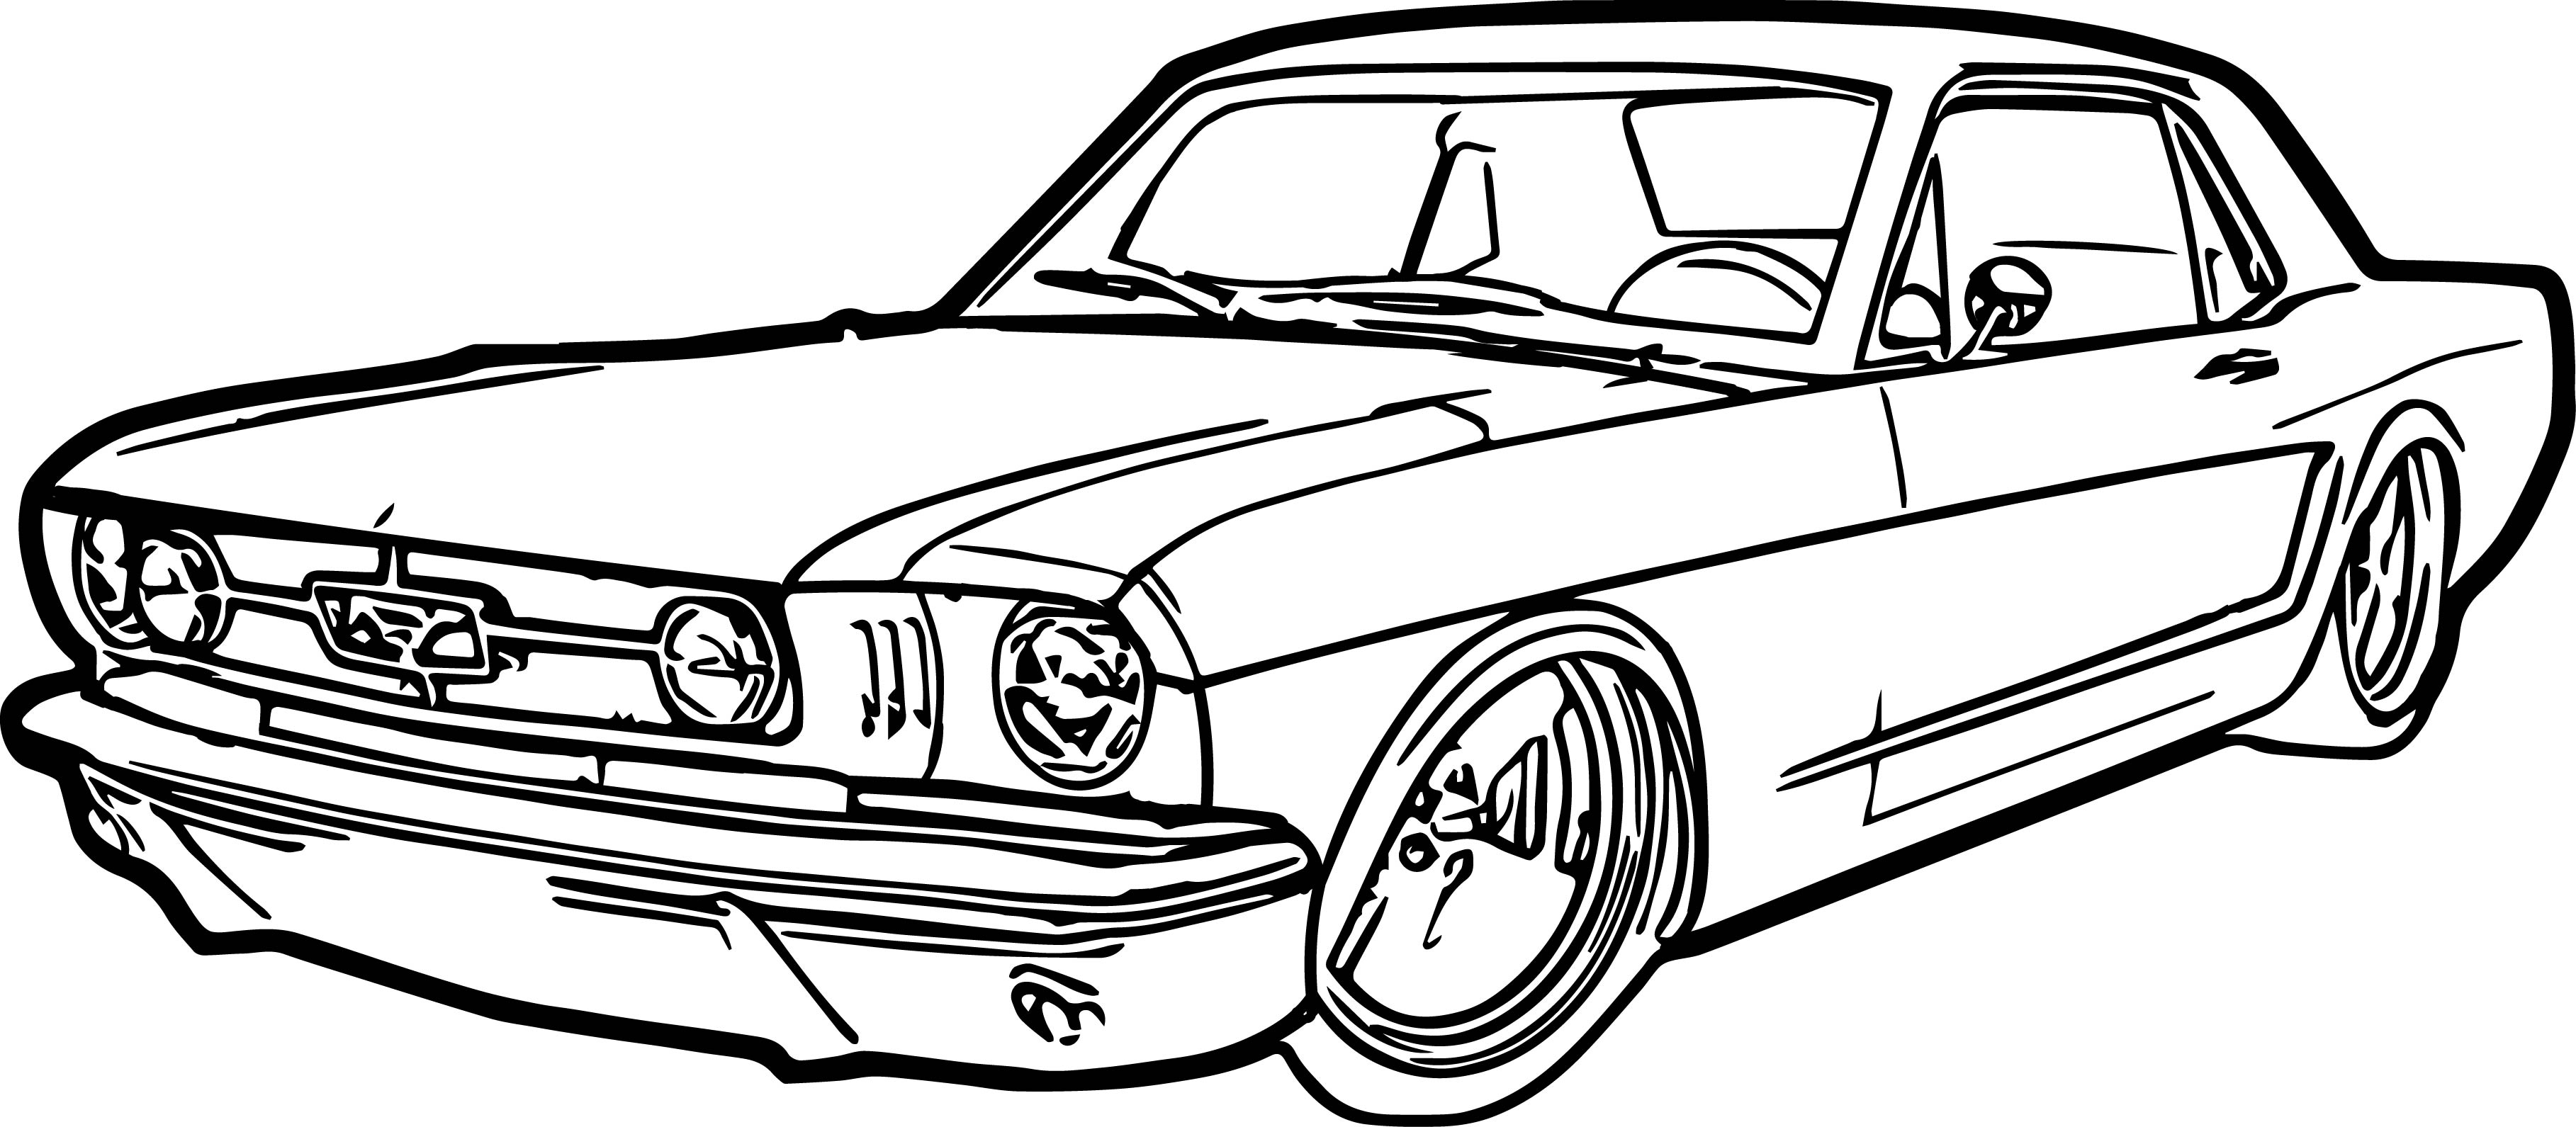 Ford mustang car coloring page for Coloring pages of cars to print